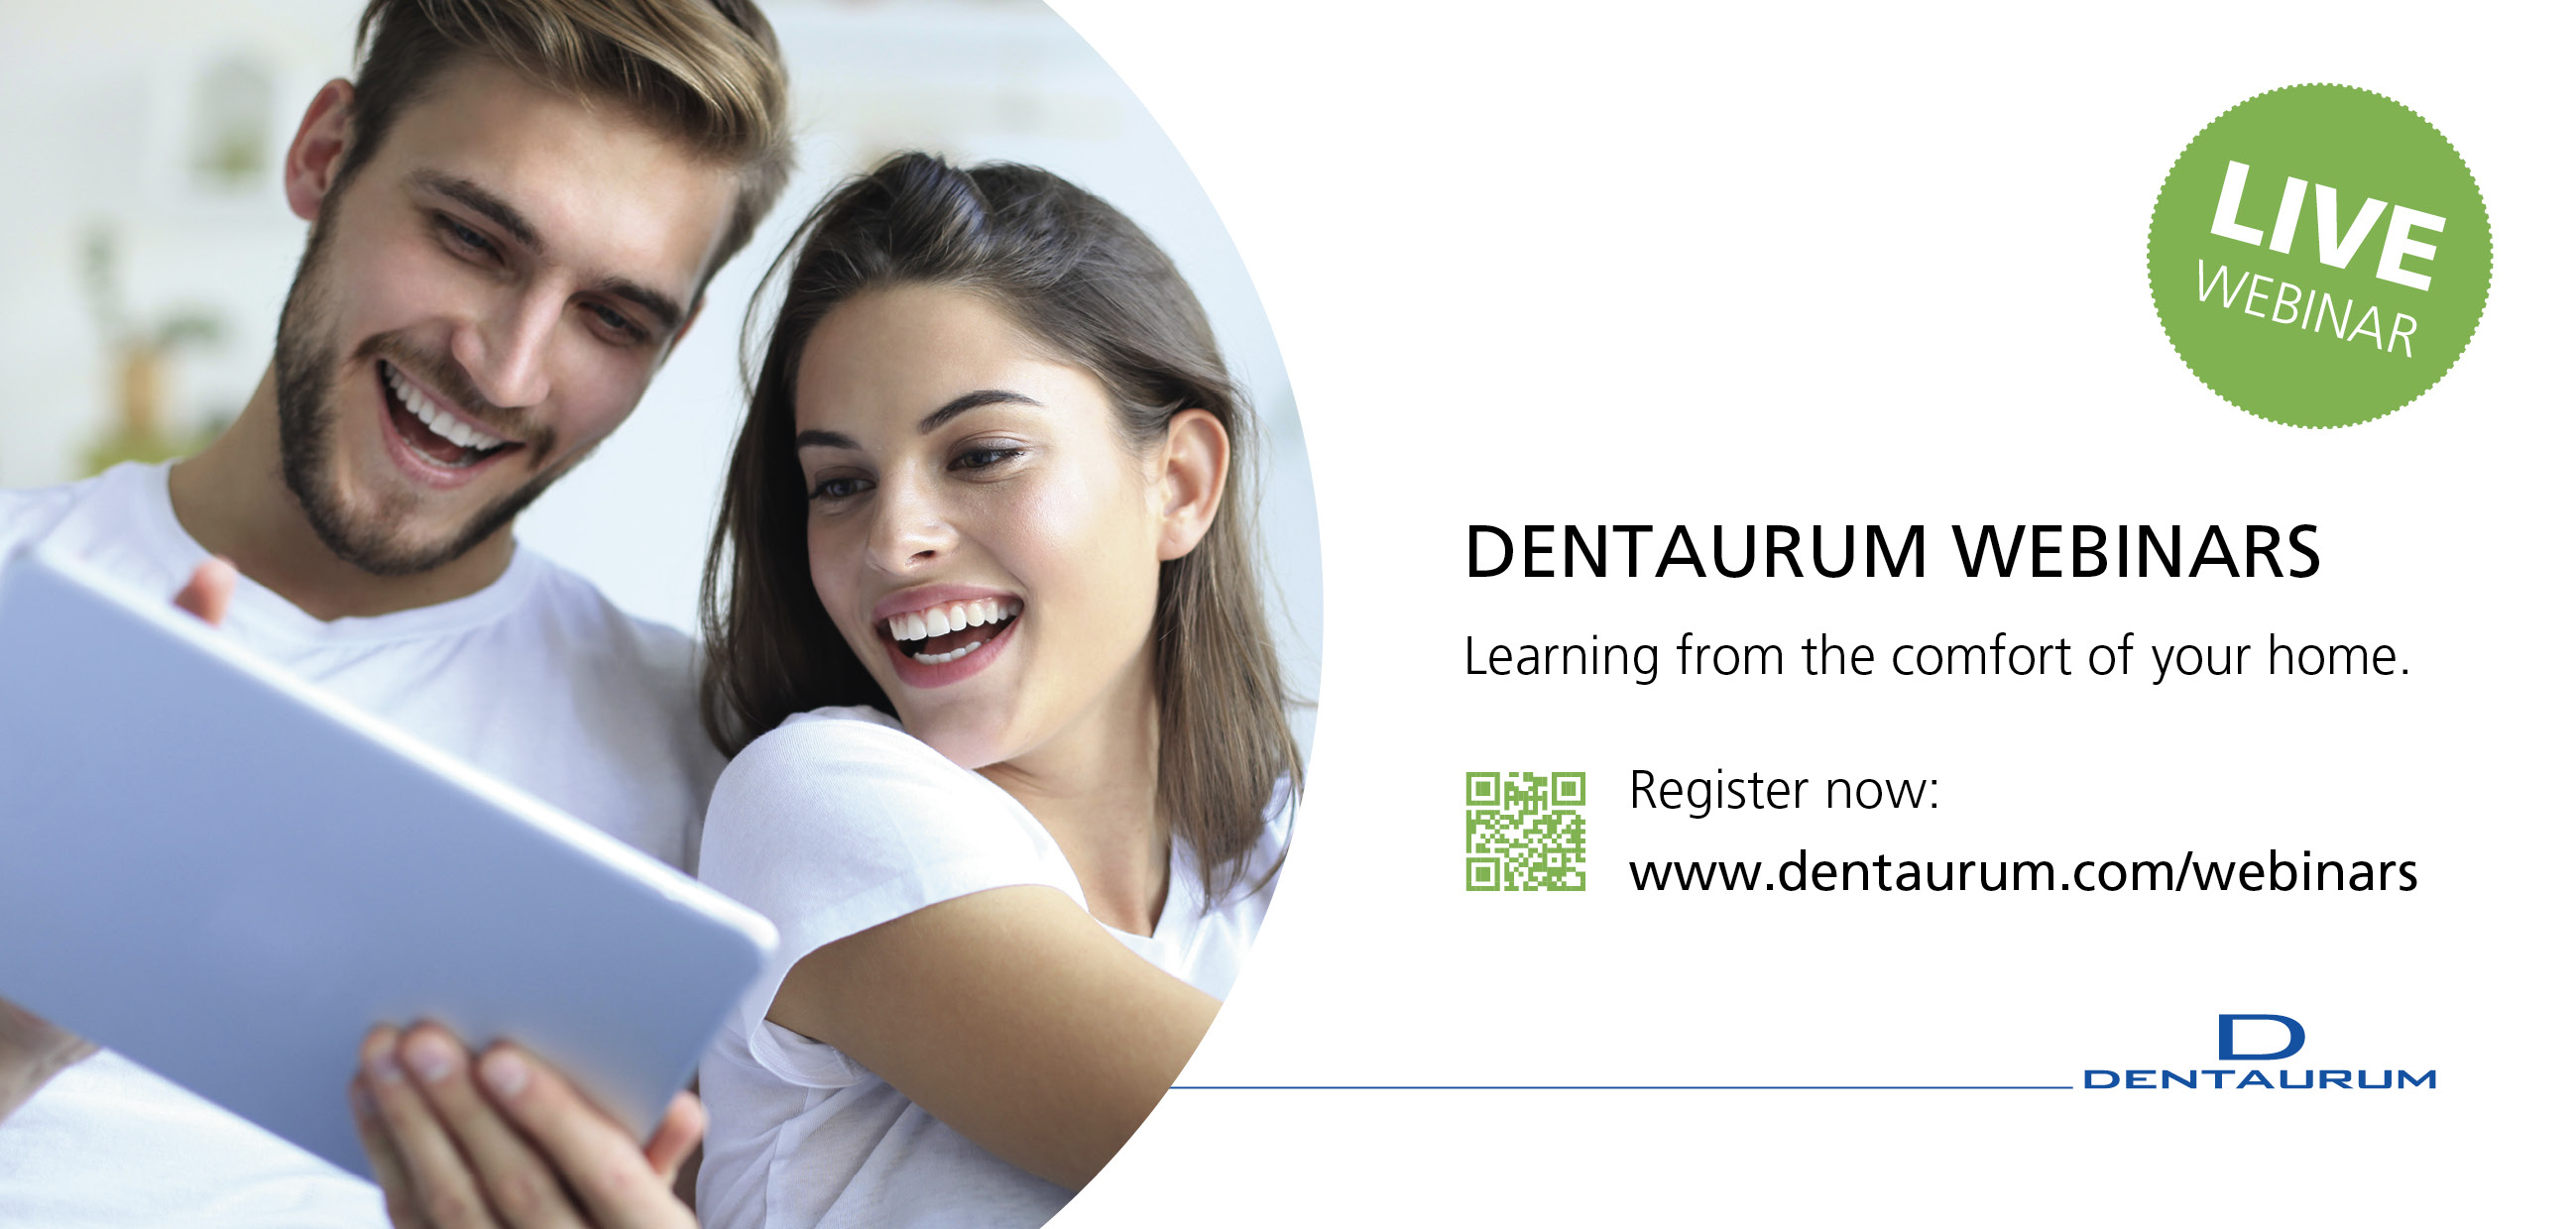 Distance training: Dentaurum extends its range of webinars